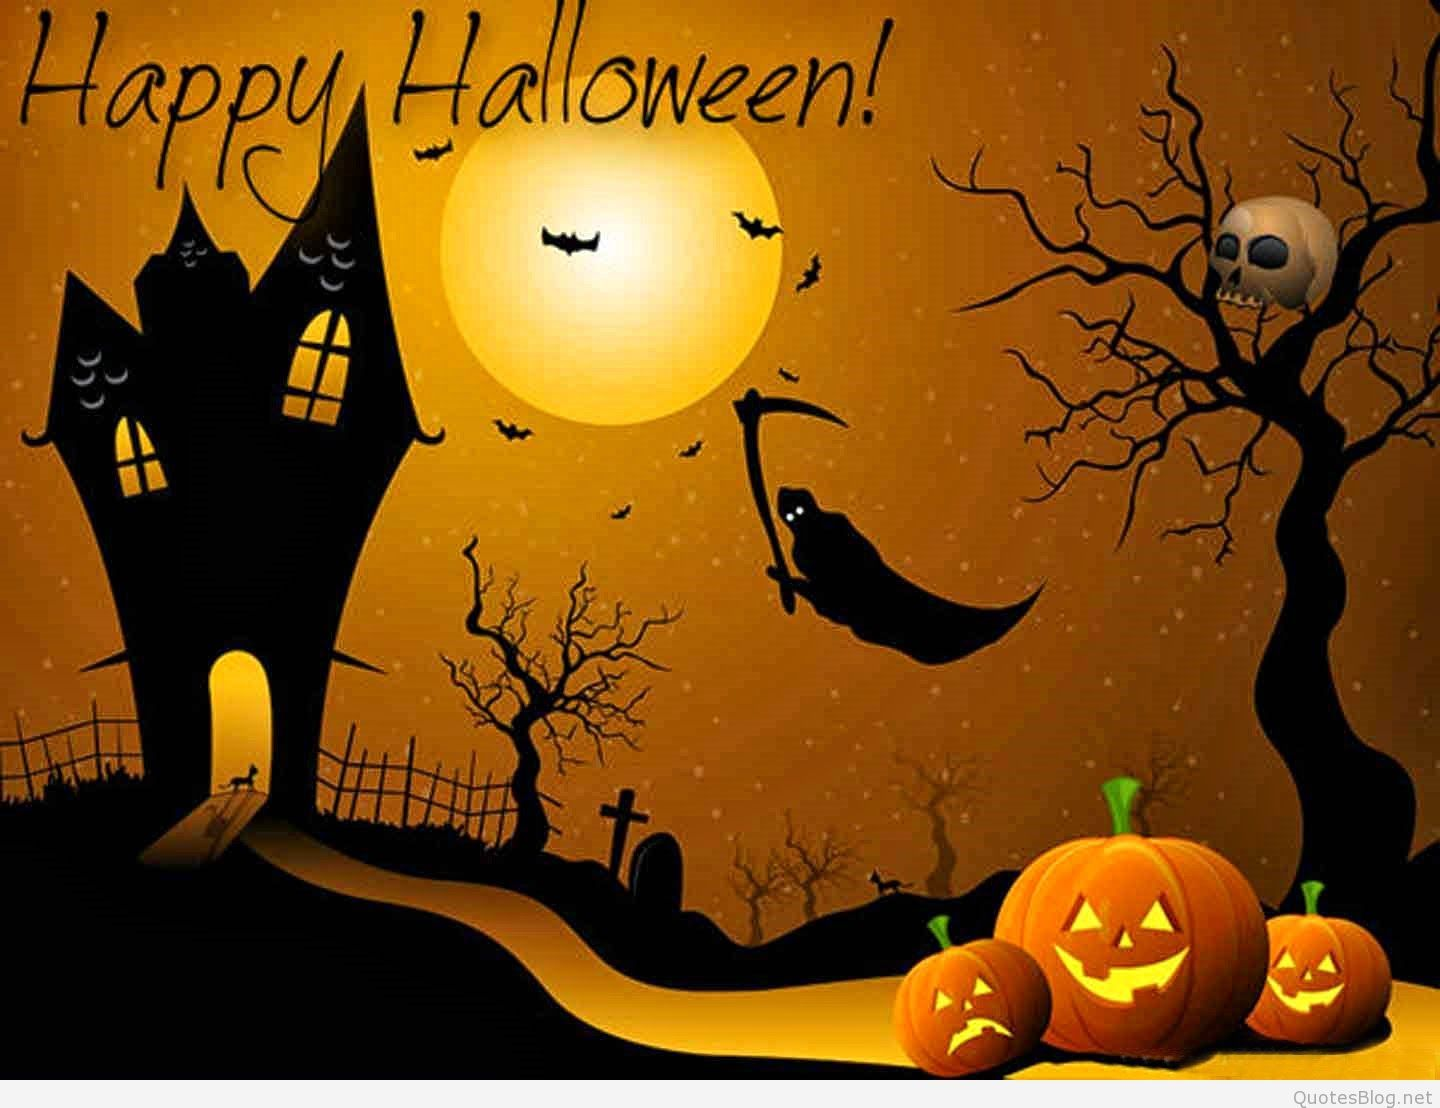 Halloween Wishes Wallpapers Images 09